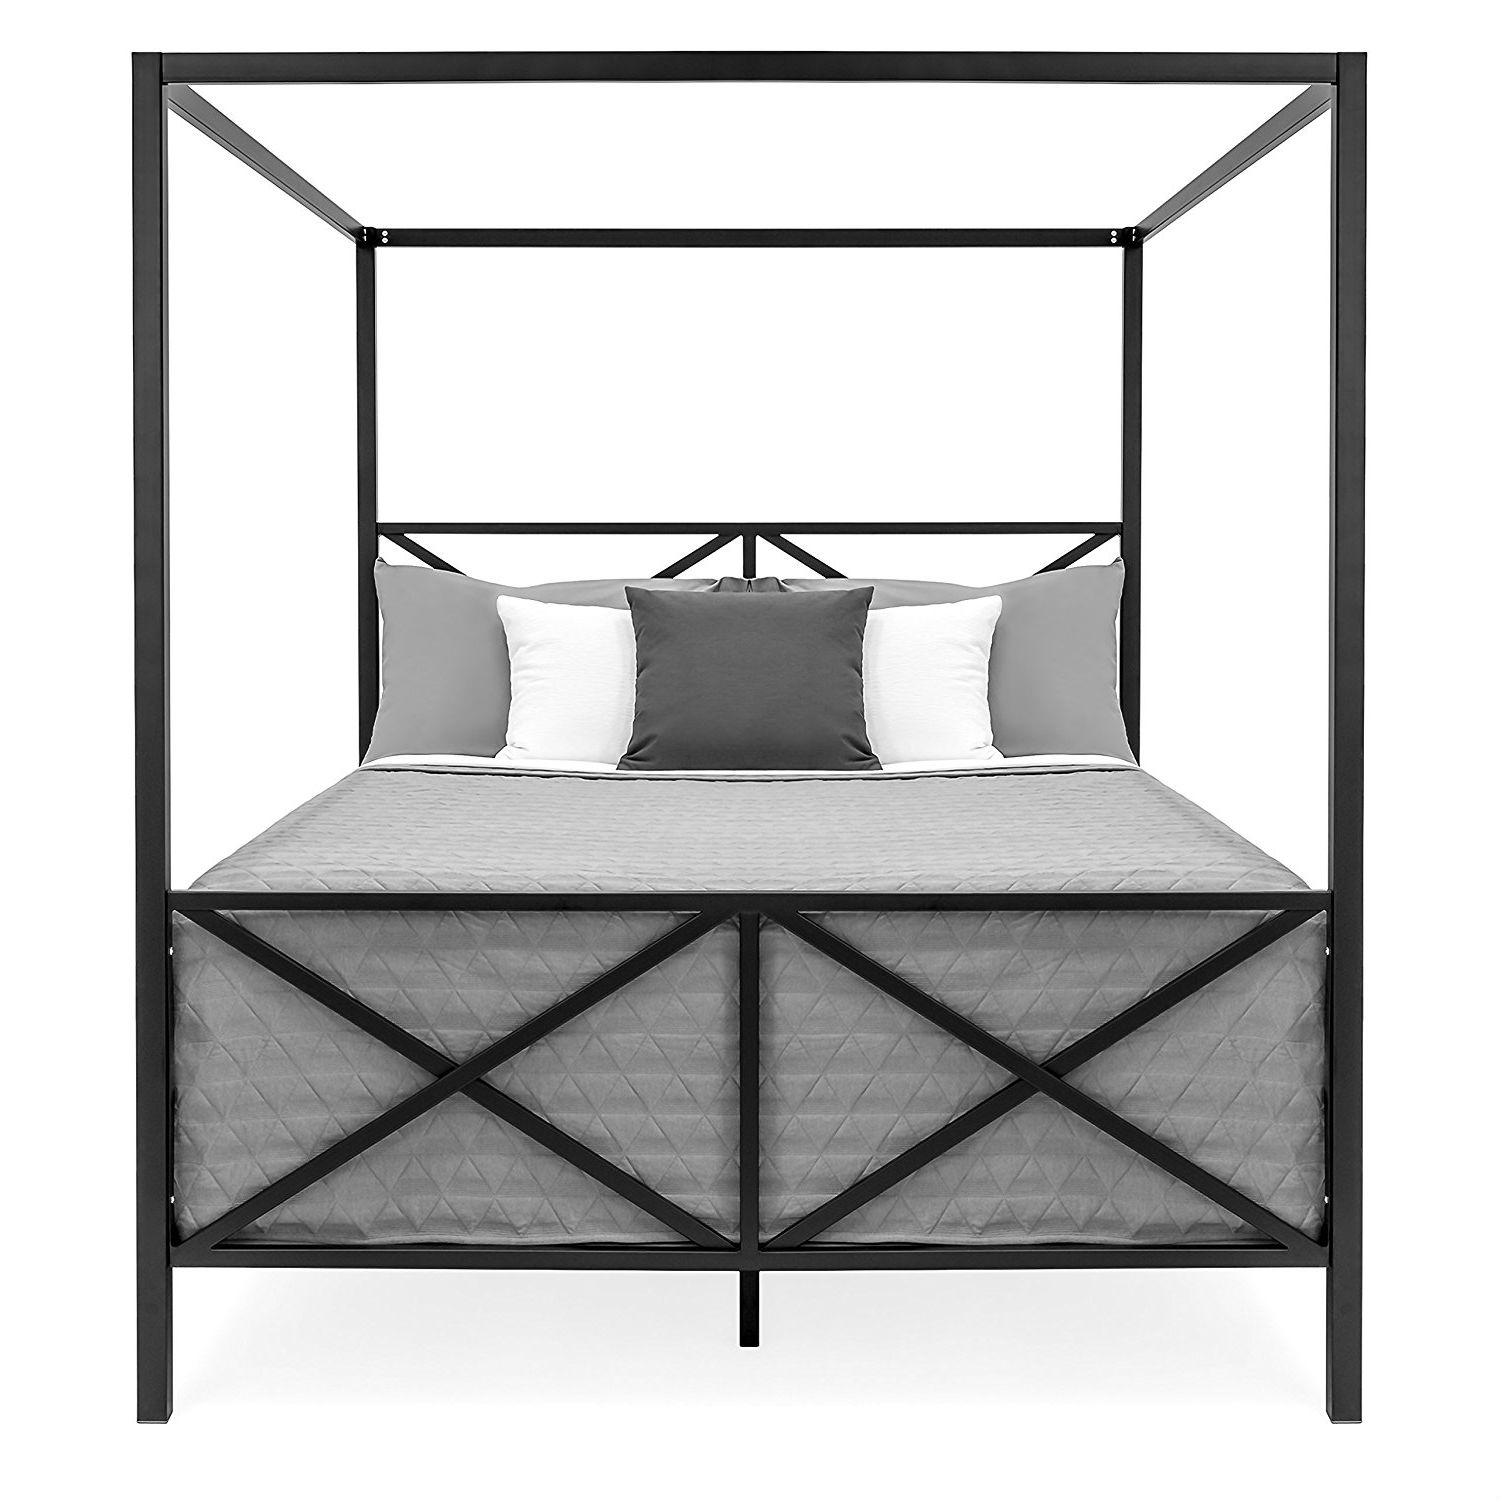 - Queen Size 4-Post Canopy Bed Frame In Black Metal Finish